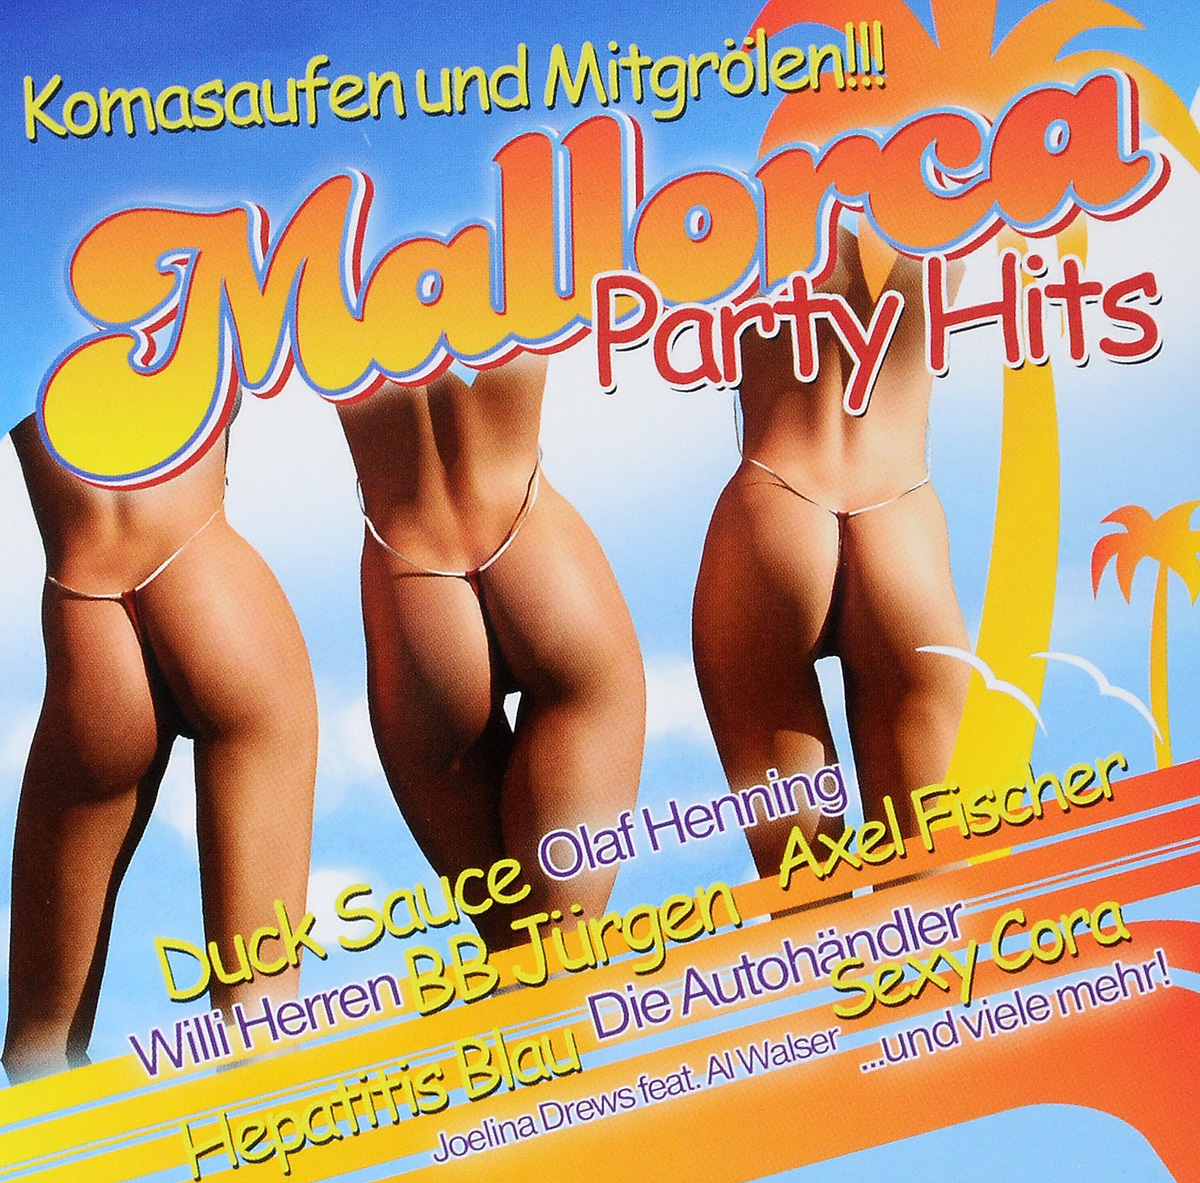 Mallorca Party Hits (2 CD) астор пьяццолла карлос гардел анибал троило нелли омар альберто гомез tango hits 2 cd